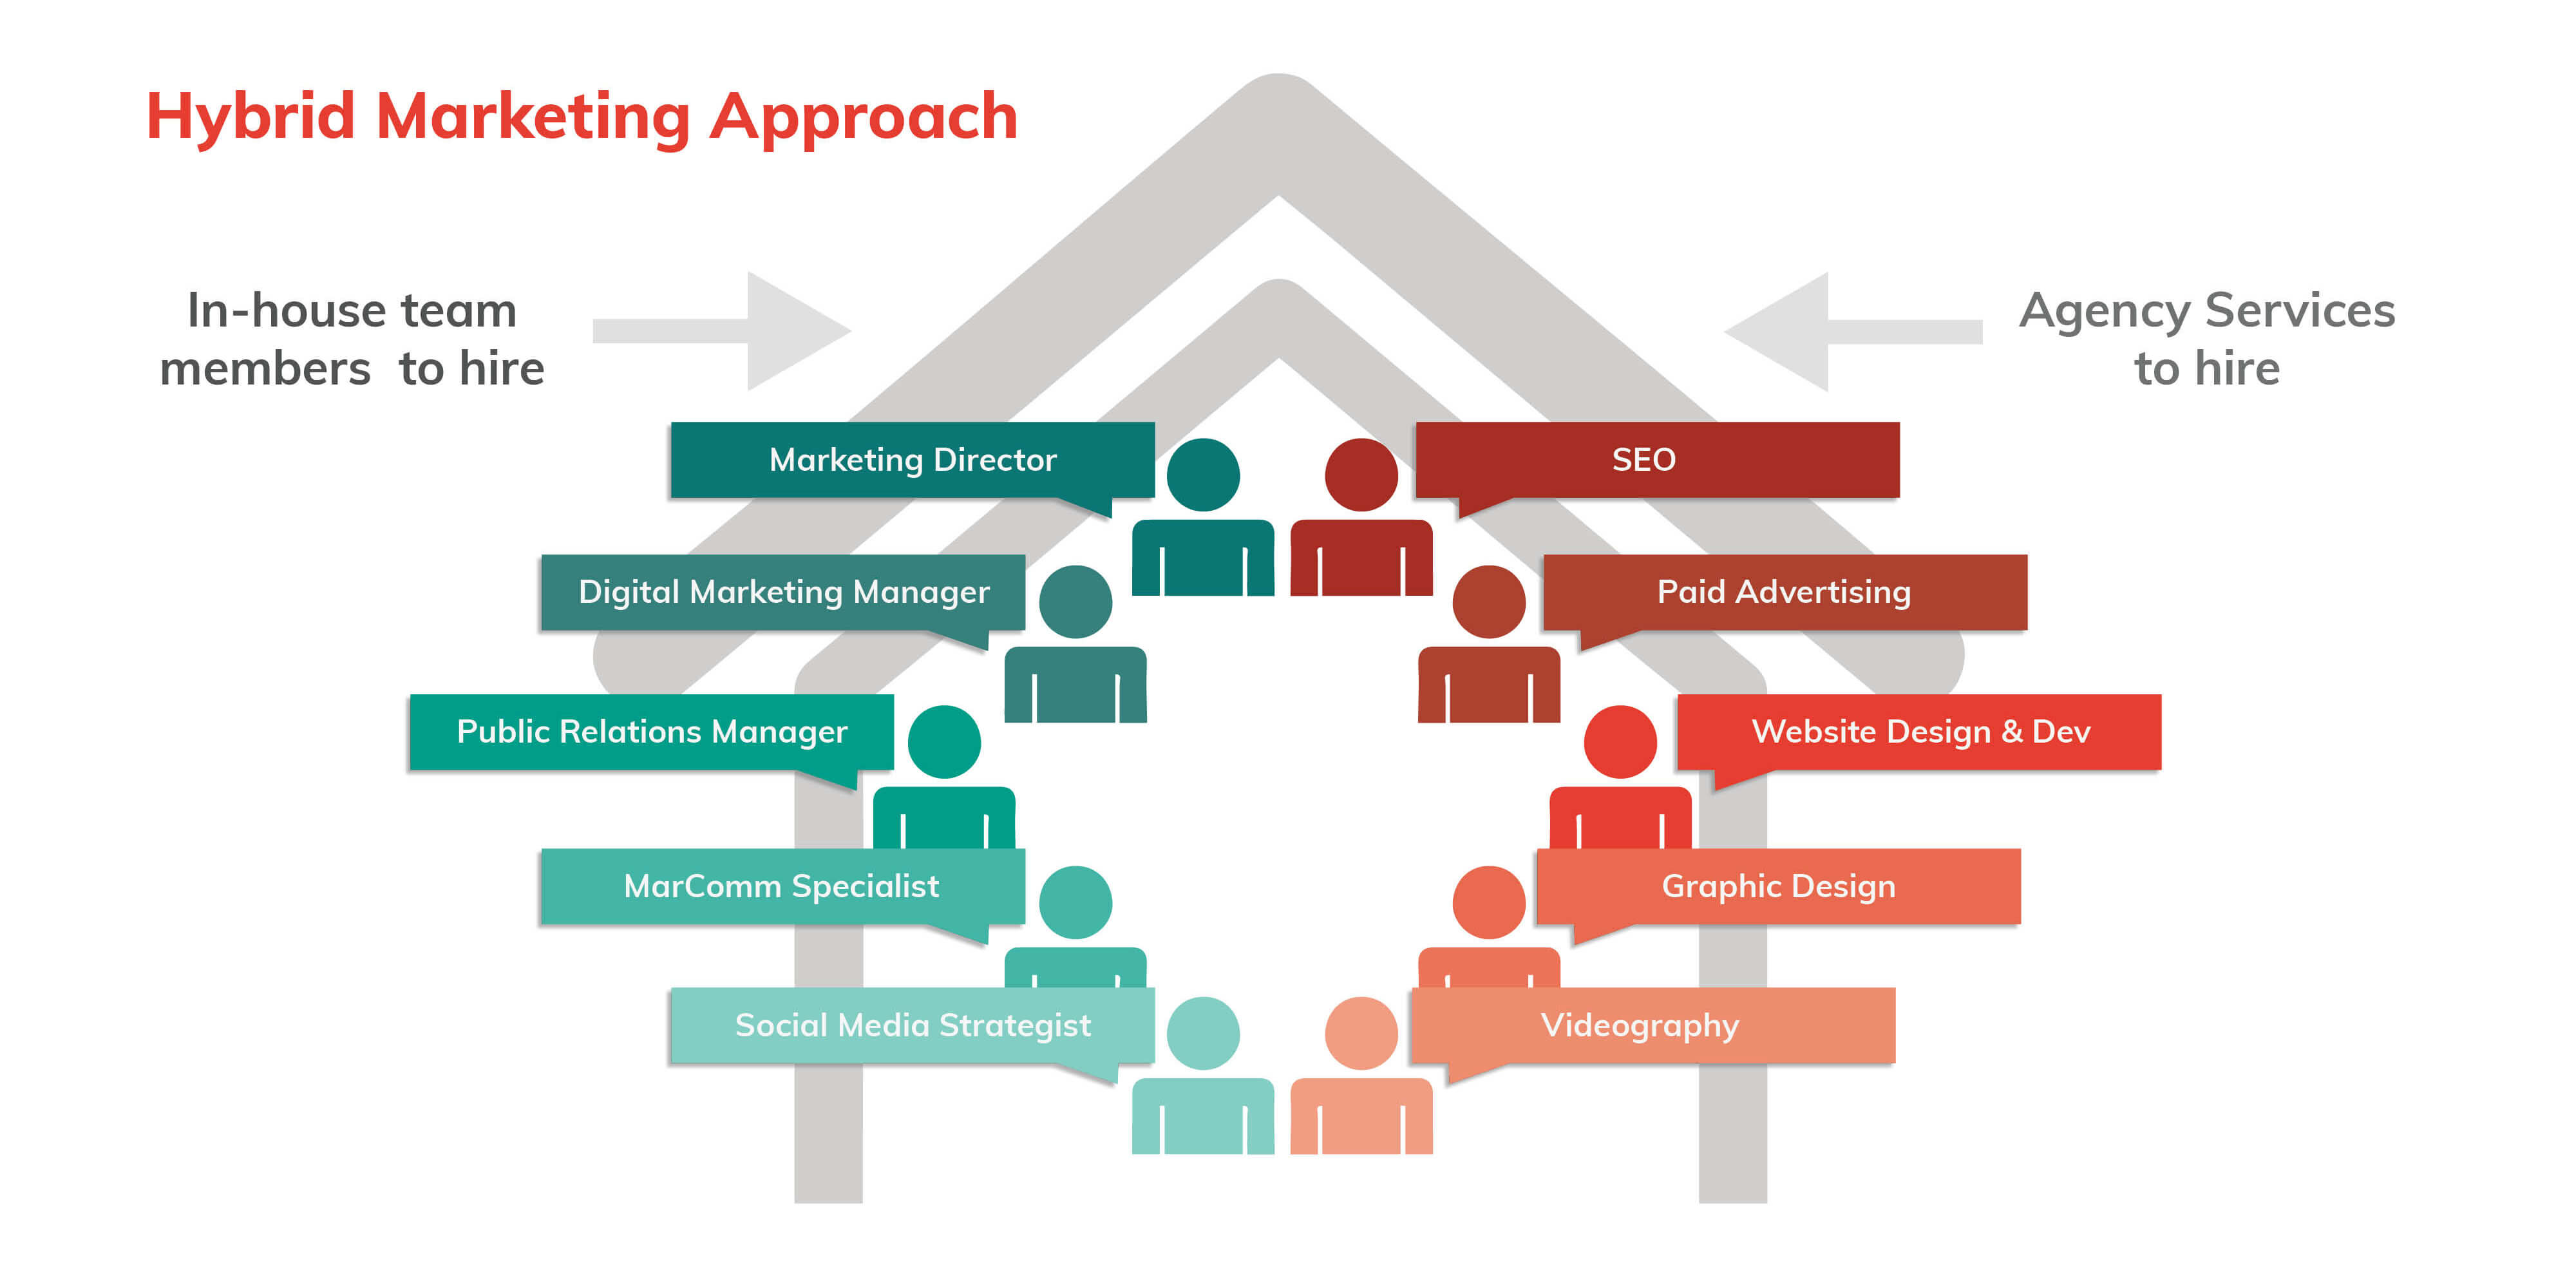 a hybrid marketing approach with in-house team and marketing agency